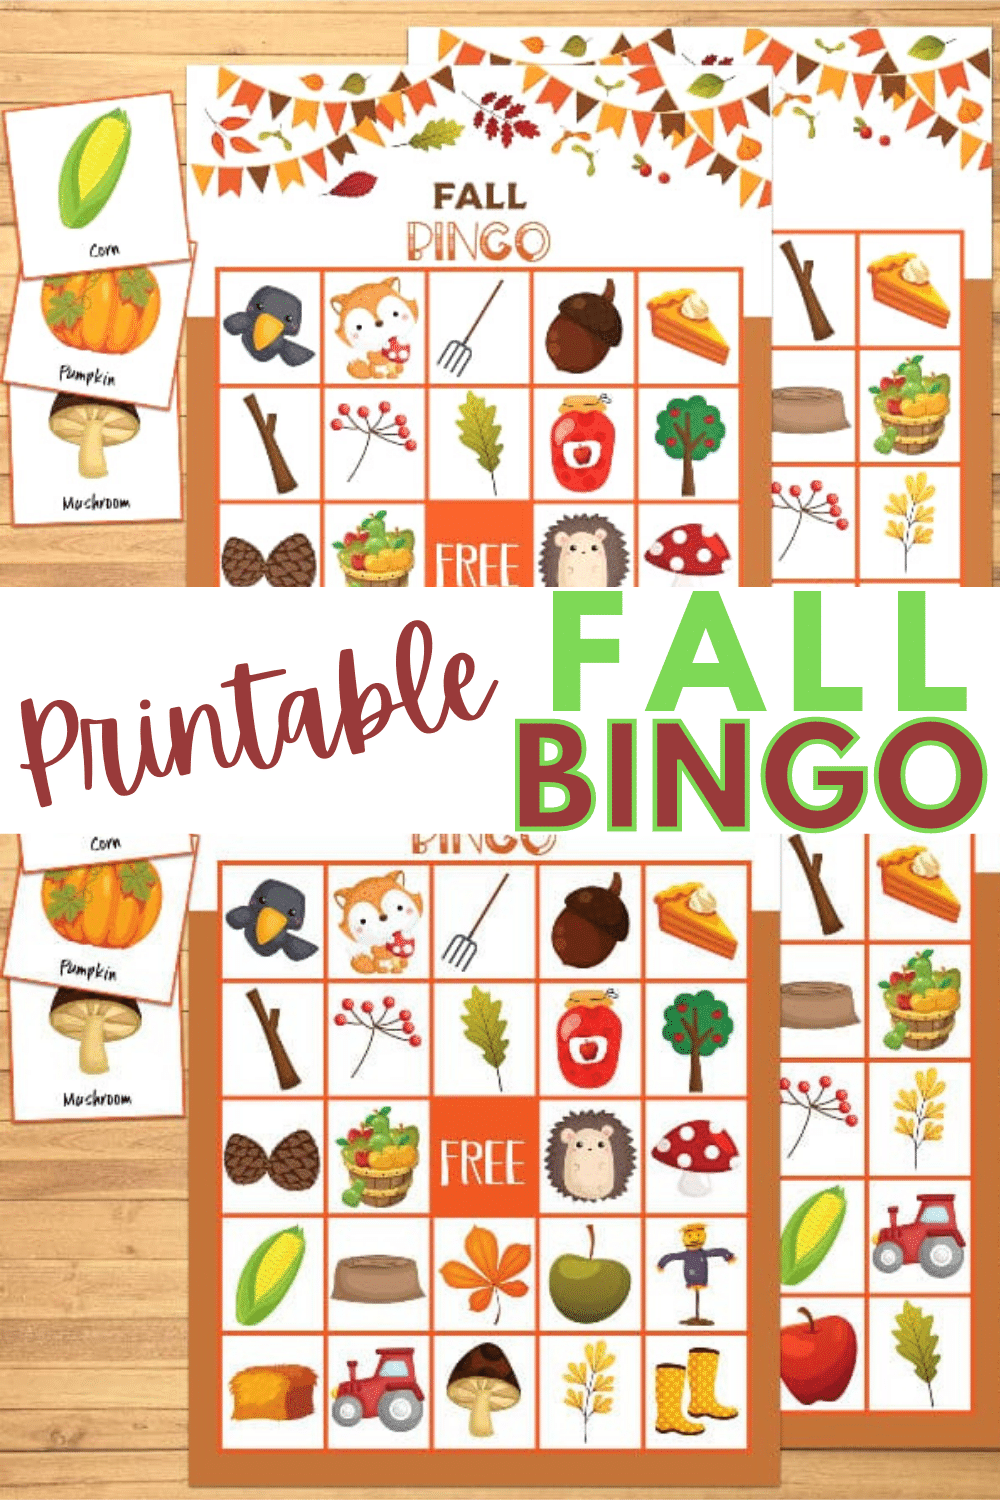 Printable Fall Bingo is a great activity for kids during the autumn months. This game is perfect for fall birthday parties or school parties. #printables #fall #bingo via @wondermomwannab